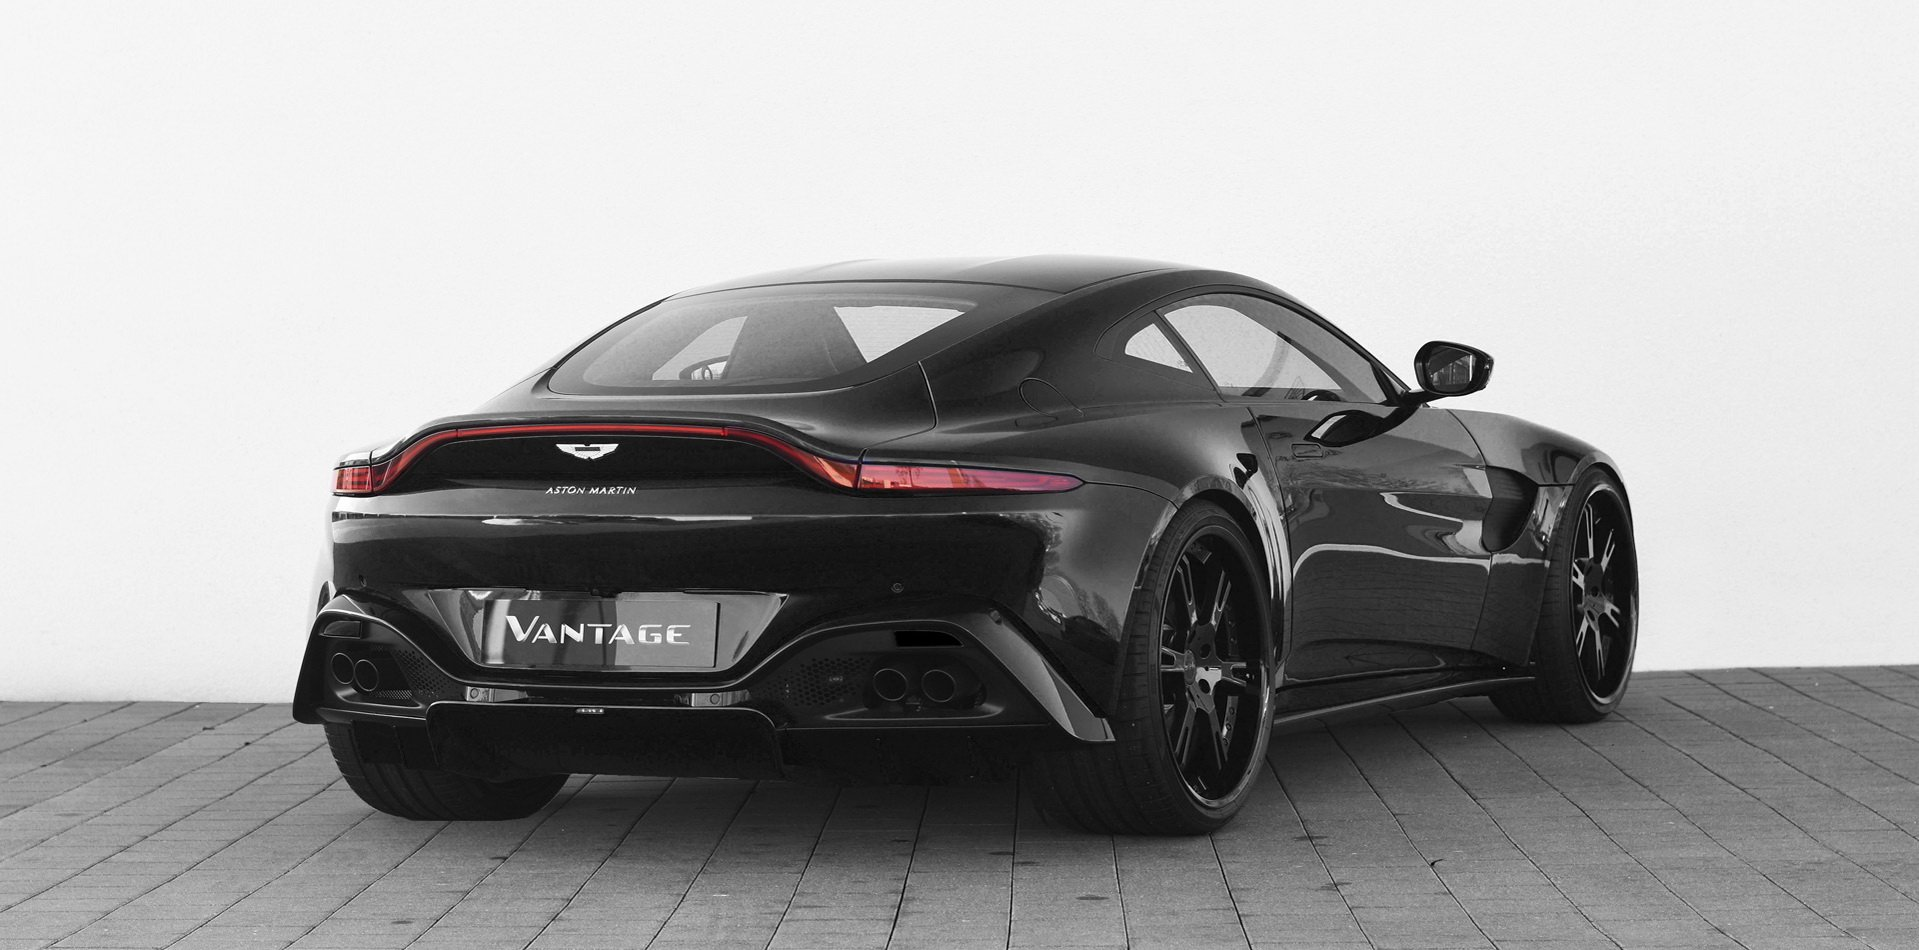 Aston-Martin-Vantage-by-wheelsandmore-6.jpg